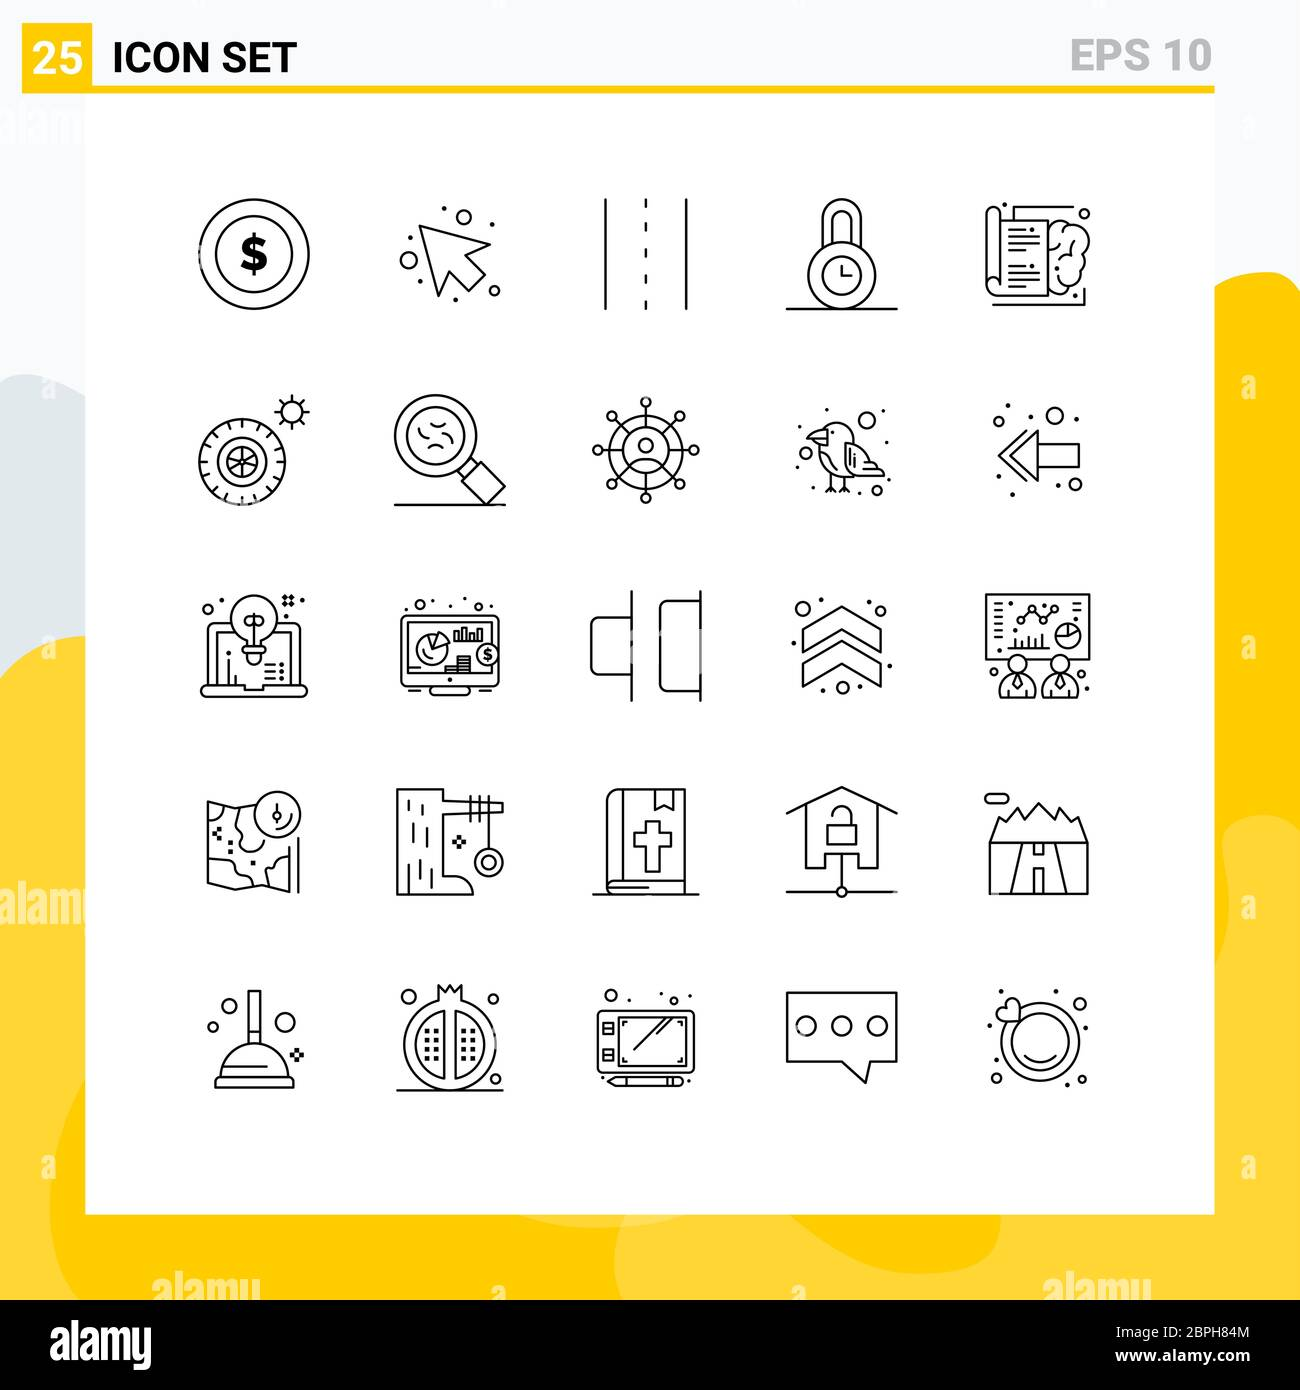 25 Thematic Vector Lines and Editable Symbols of knowledge, book, infrastructure, time, lock Editable Vector Design Elements Stock Vector